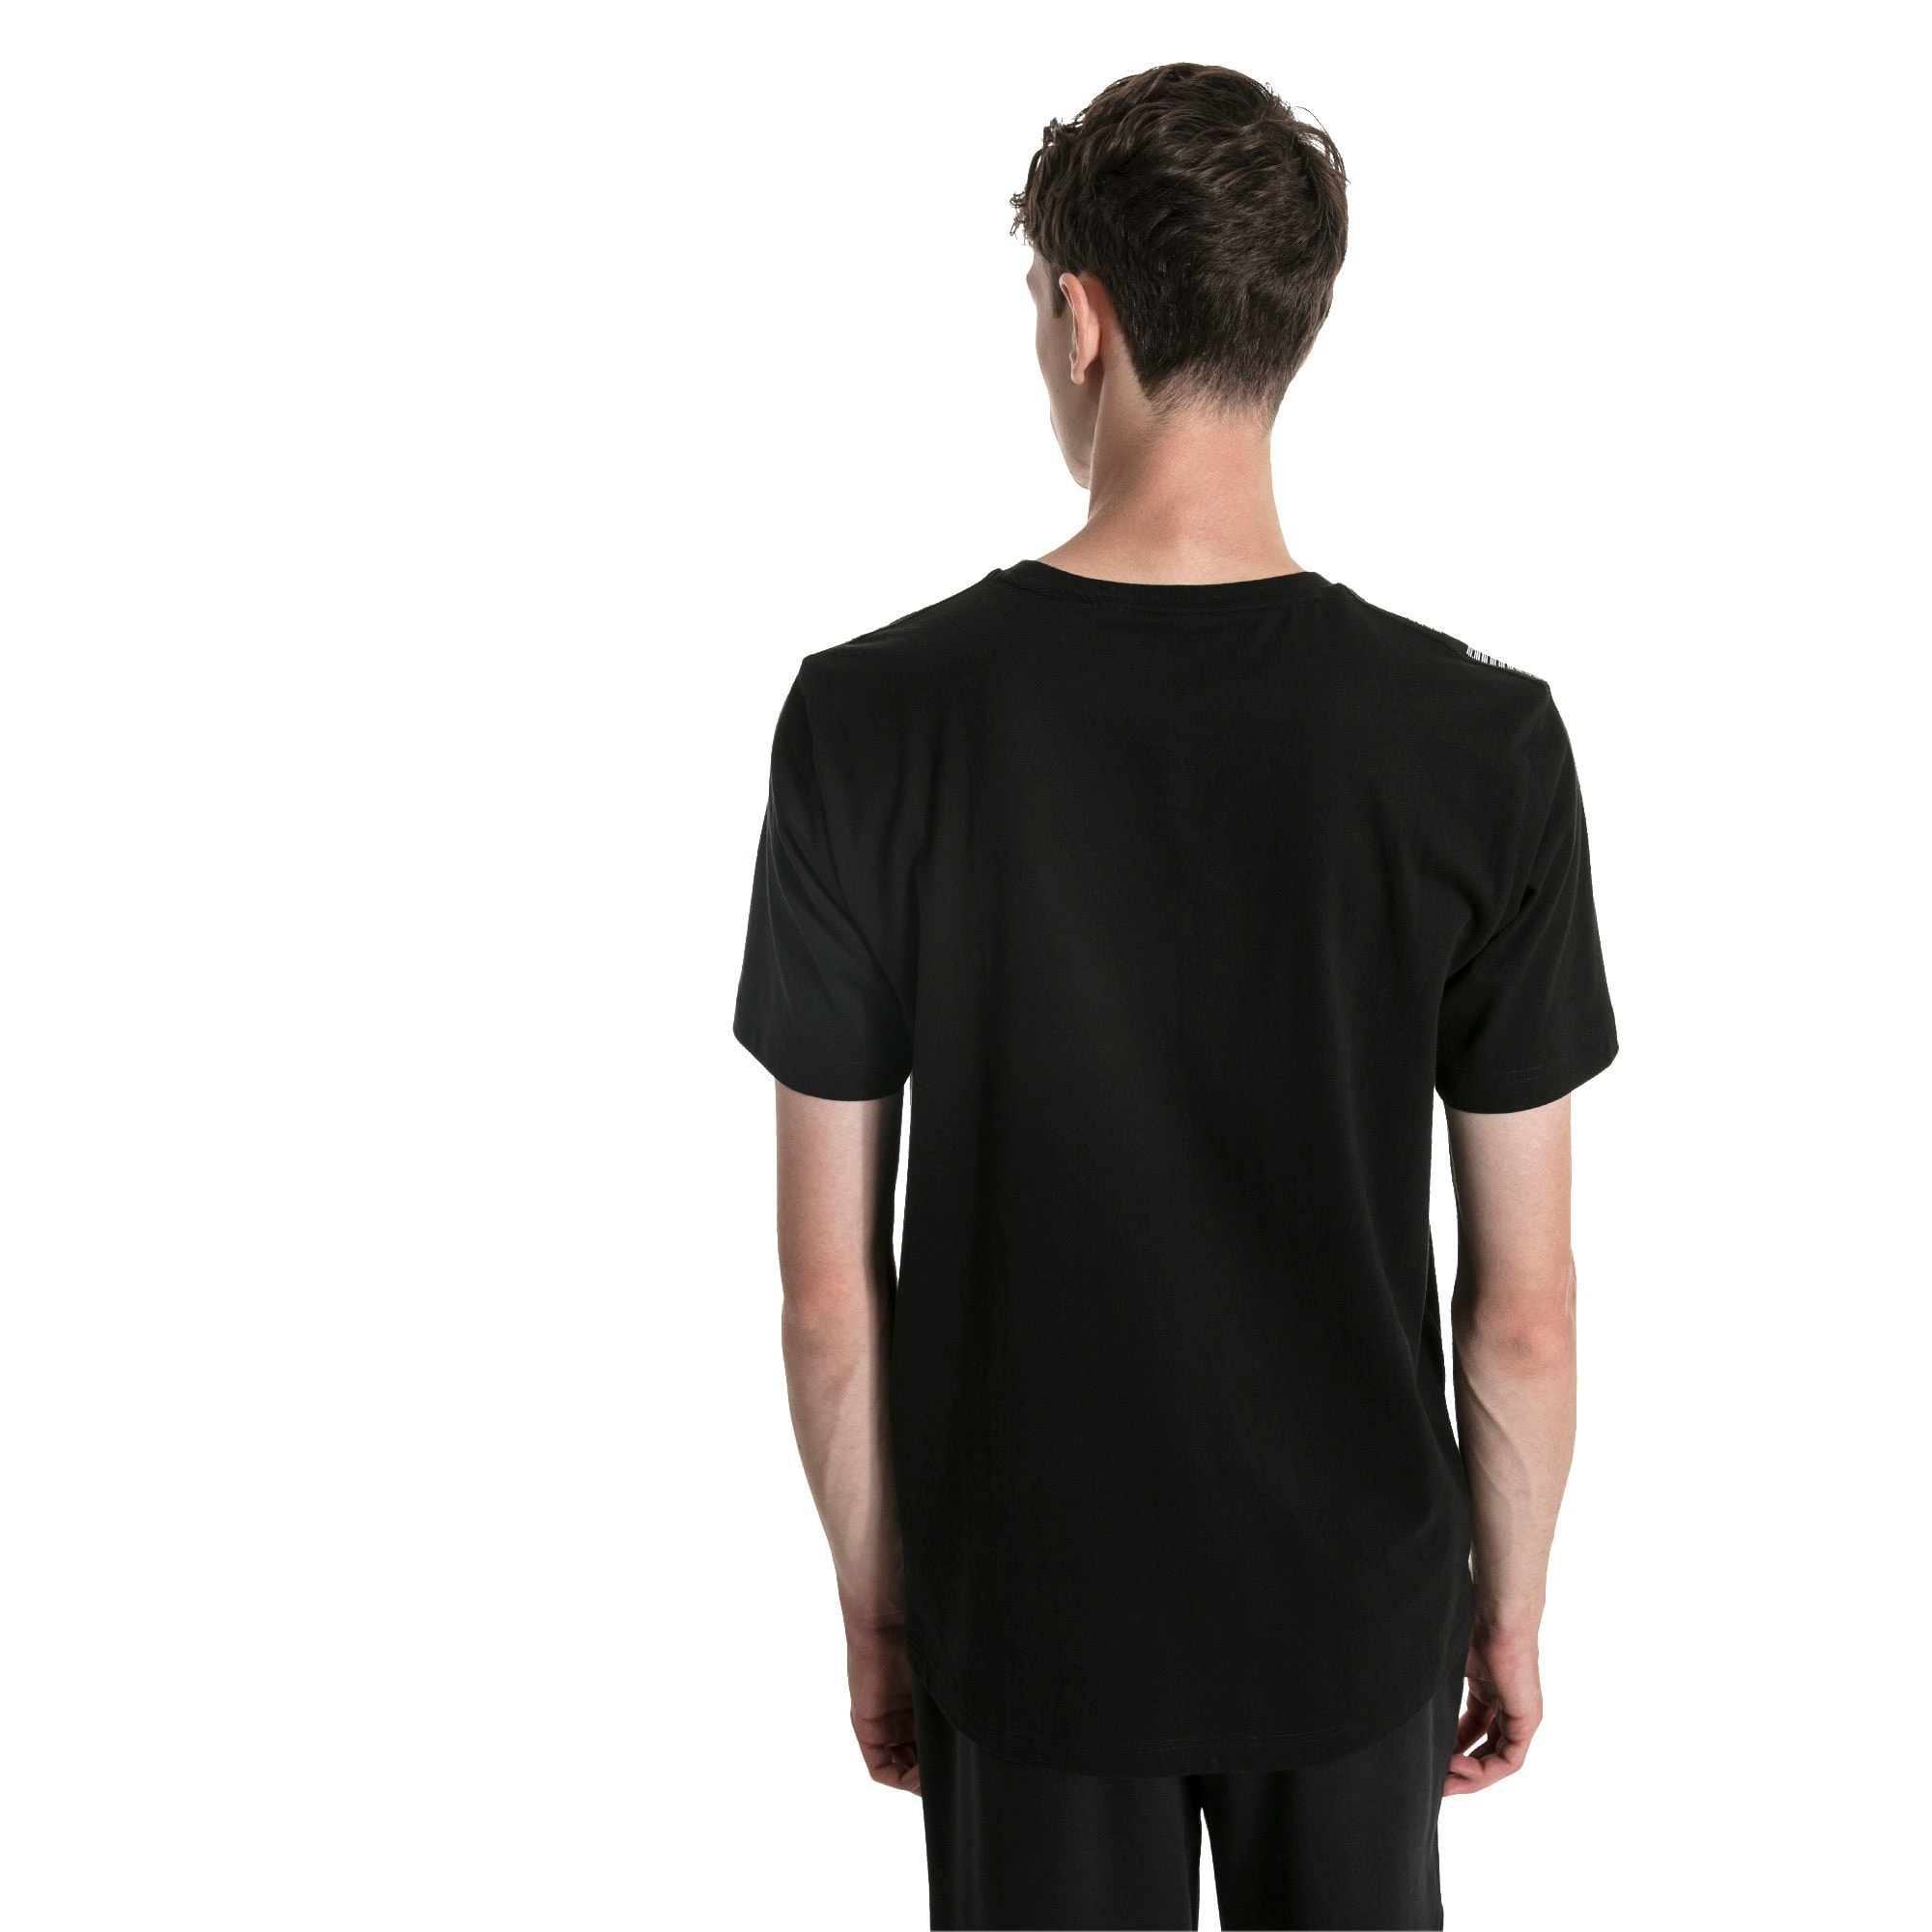 Amplified Tee, Cotton Black, large